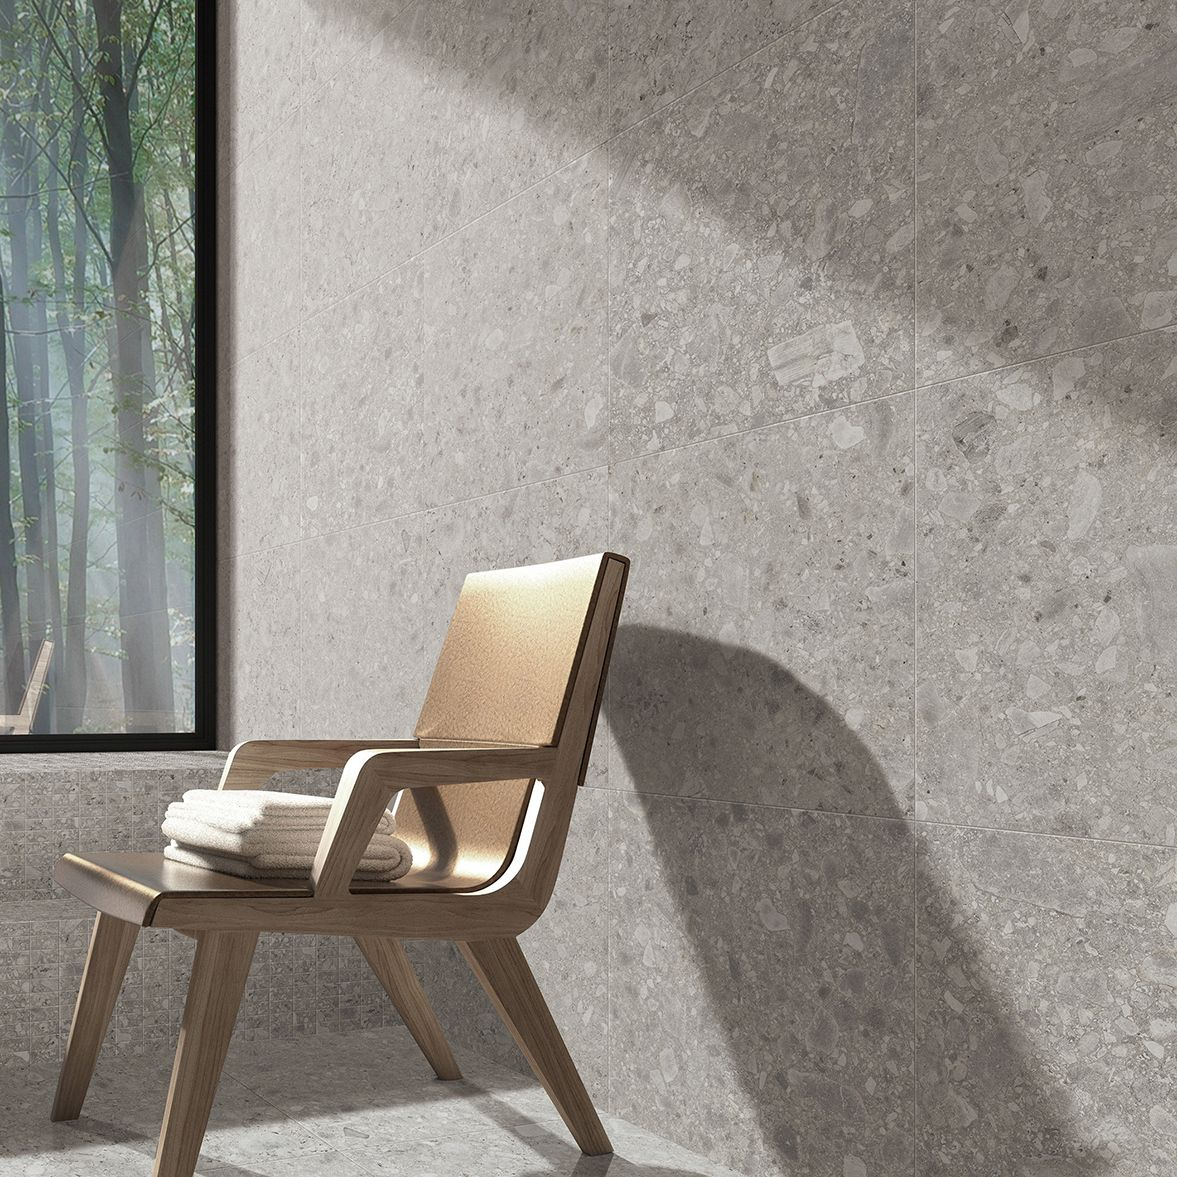 New Terrazzo Tiles Available In A Range Of Colours And